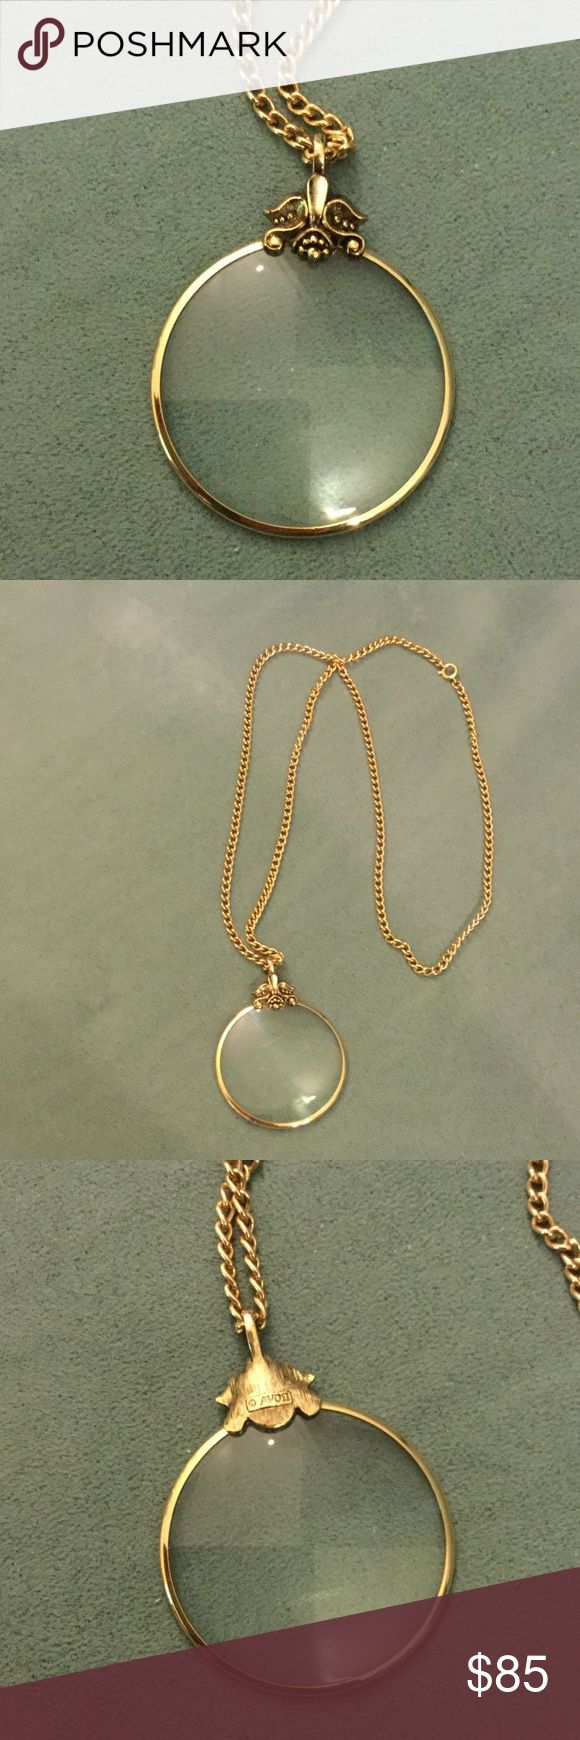 """Vintage AVON Magnifying Glass Gold Plated Necklace Perfect condition, 28.5"""" chain. 1 13/16"""" diameter on pendant. Vintage Jewelry Necklaces"""